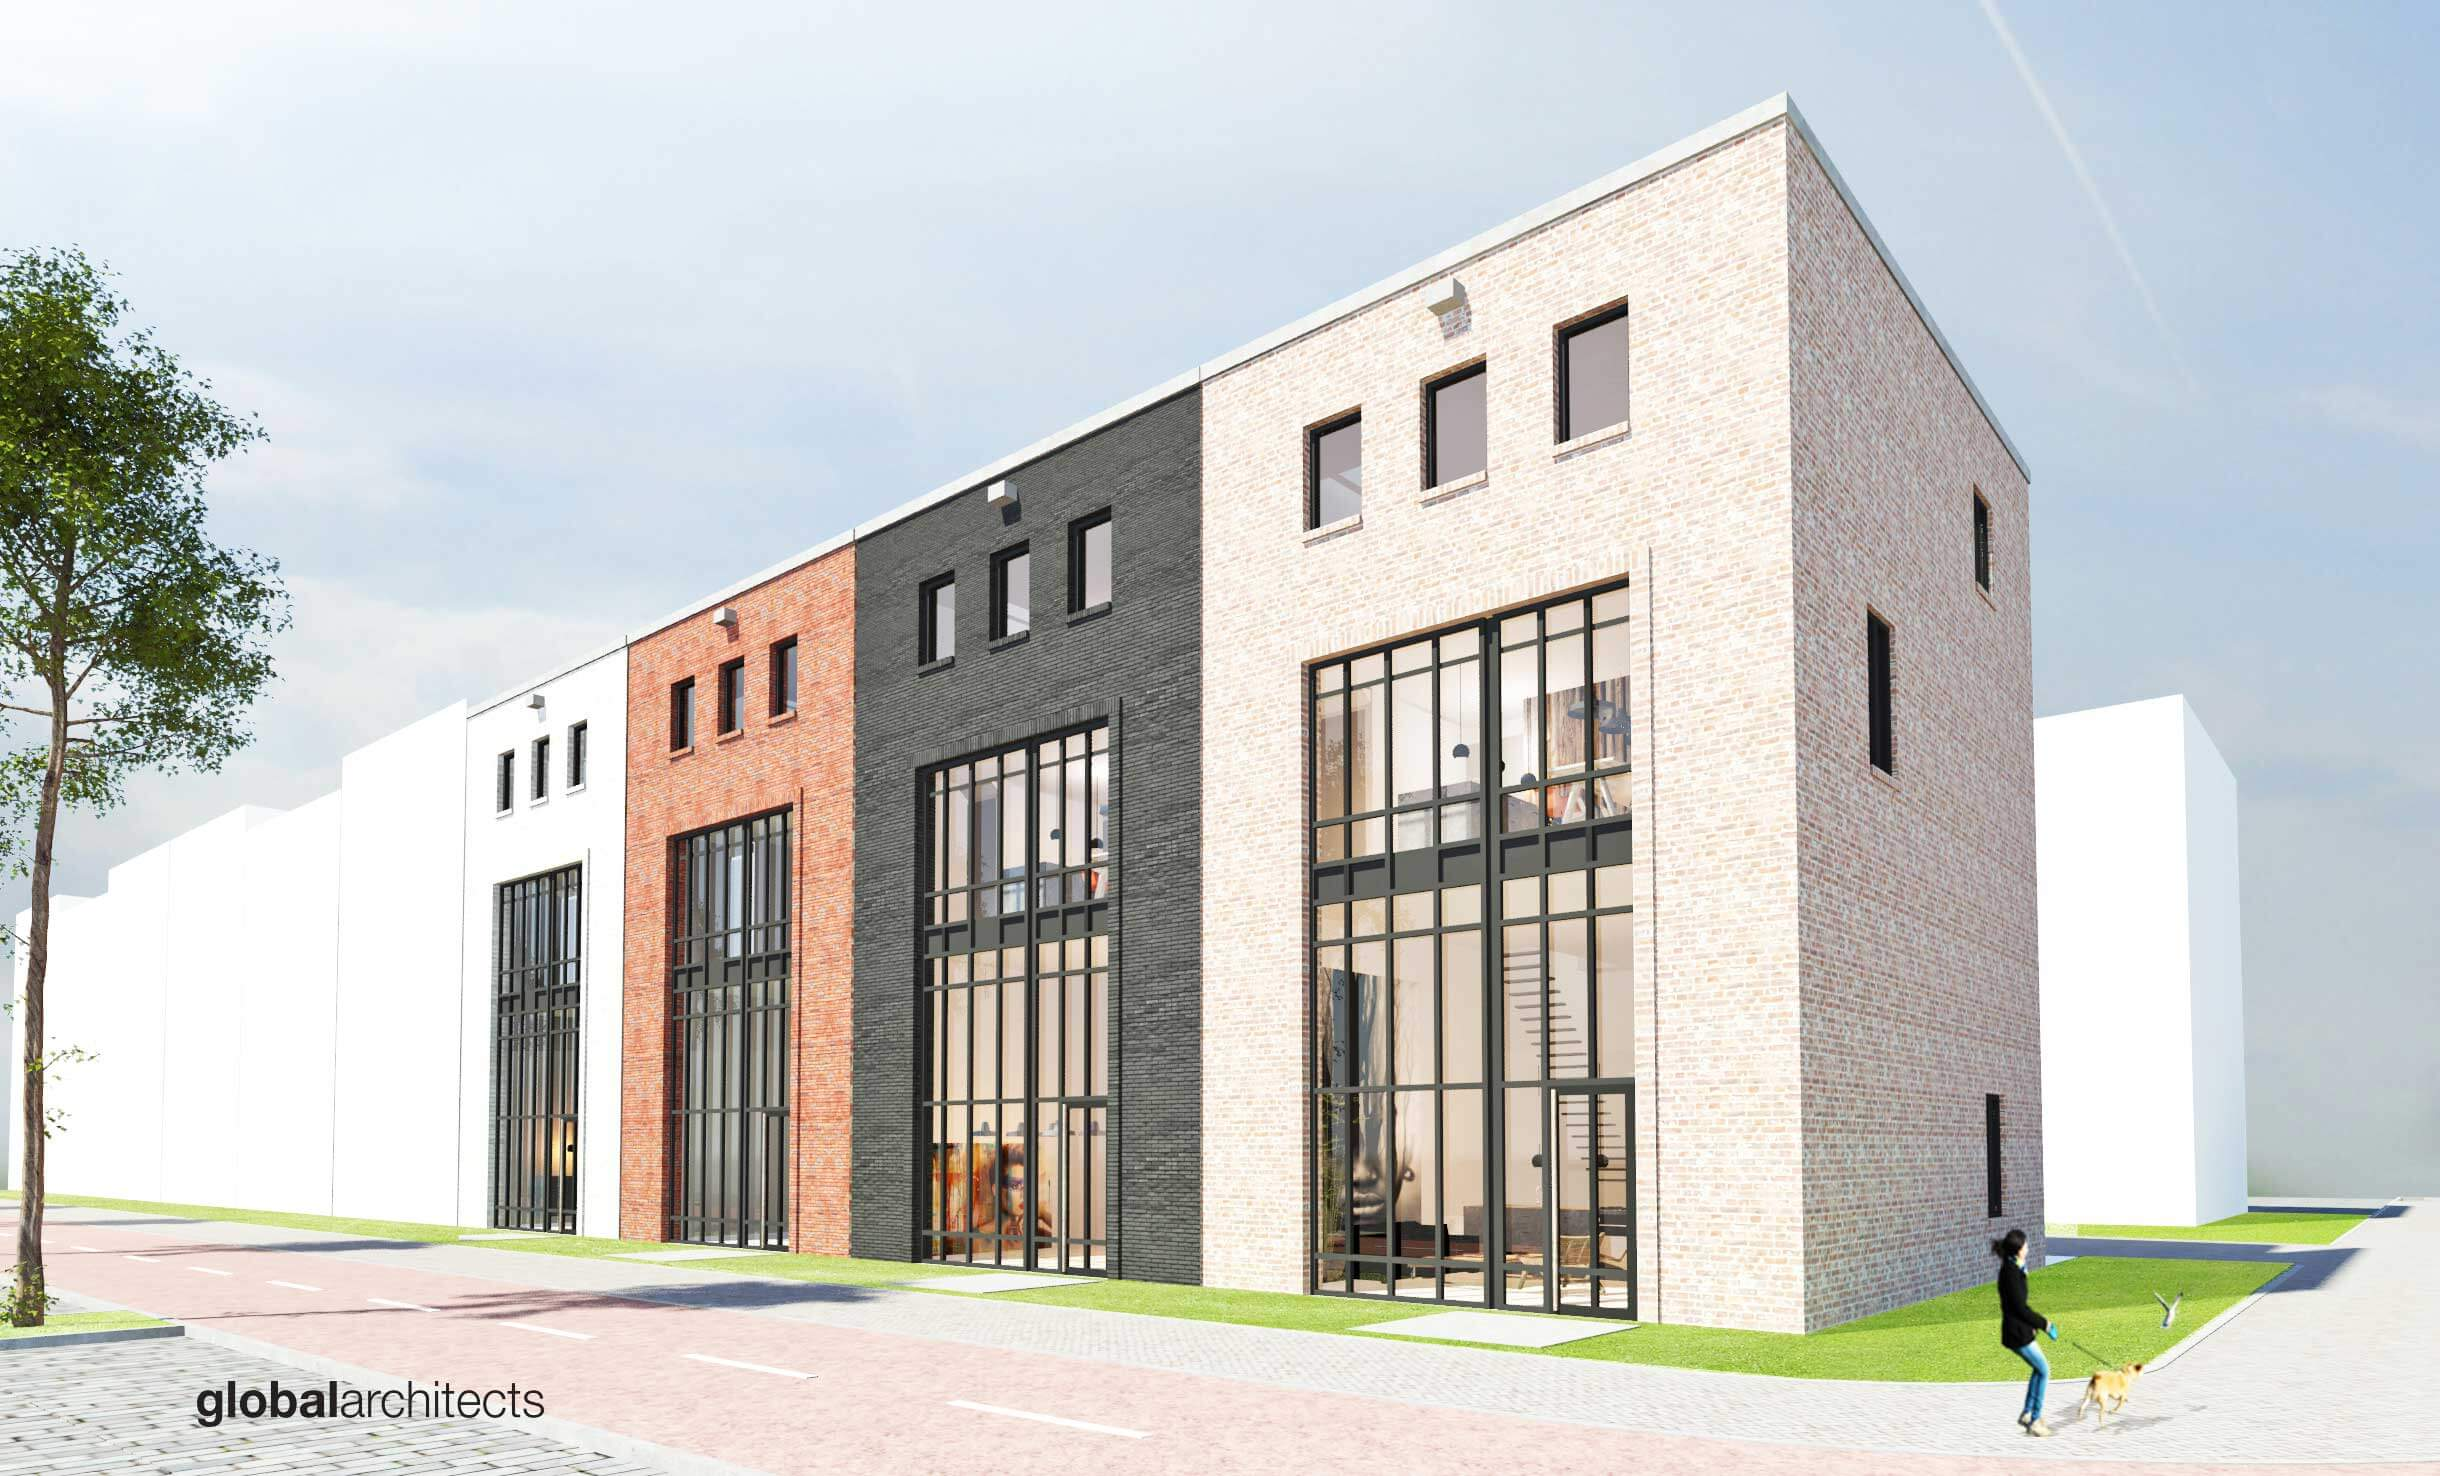 Urban-factory-Kavels-Petroleumhaven-West-architect-architectenbureau-zelfbouw